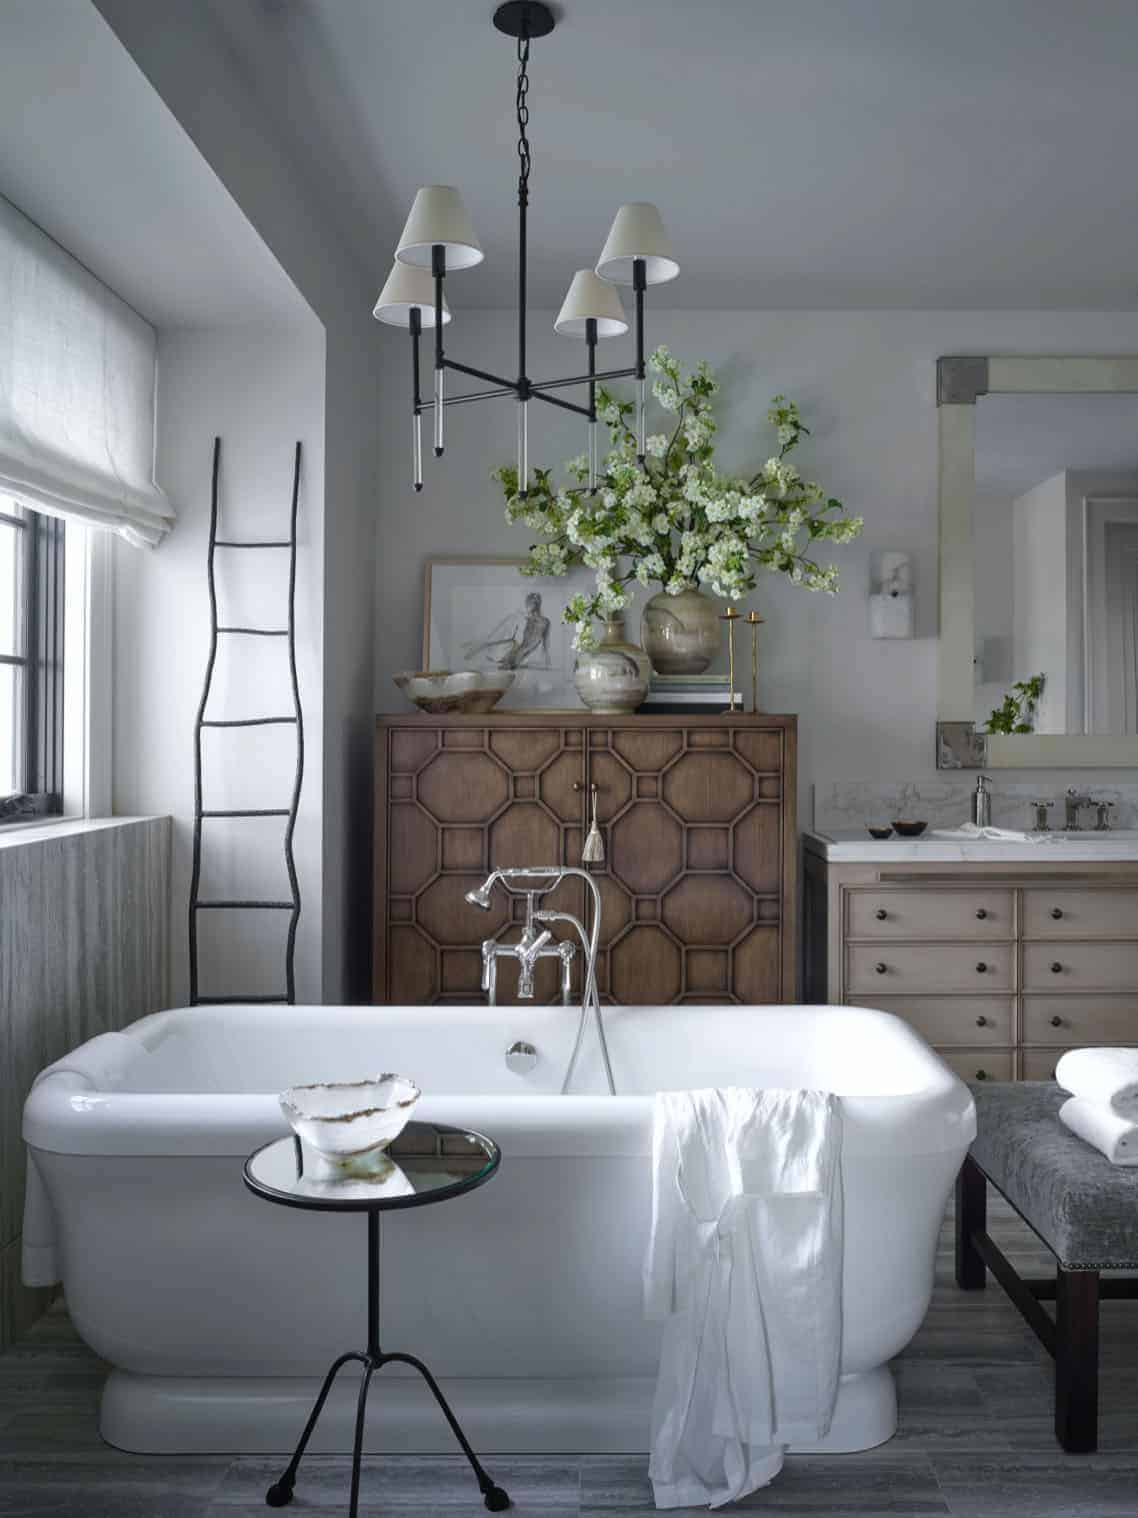 french bathroom in country style